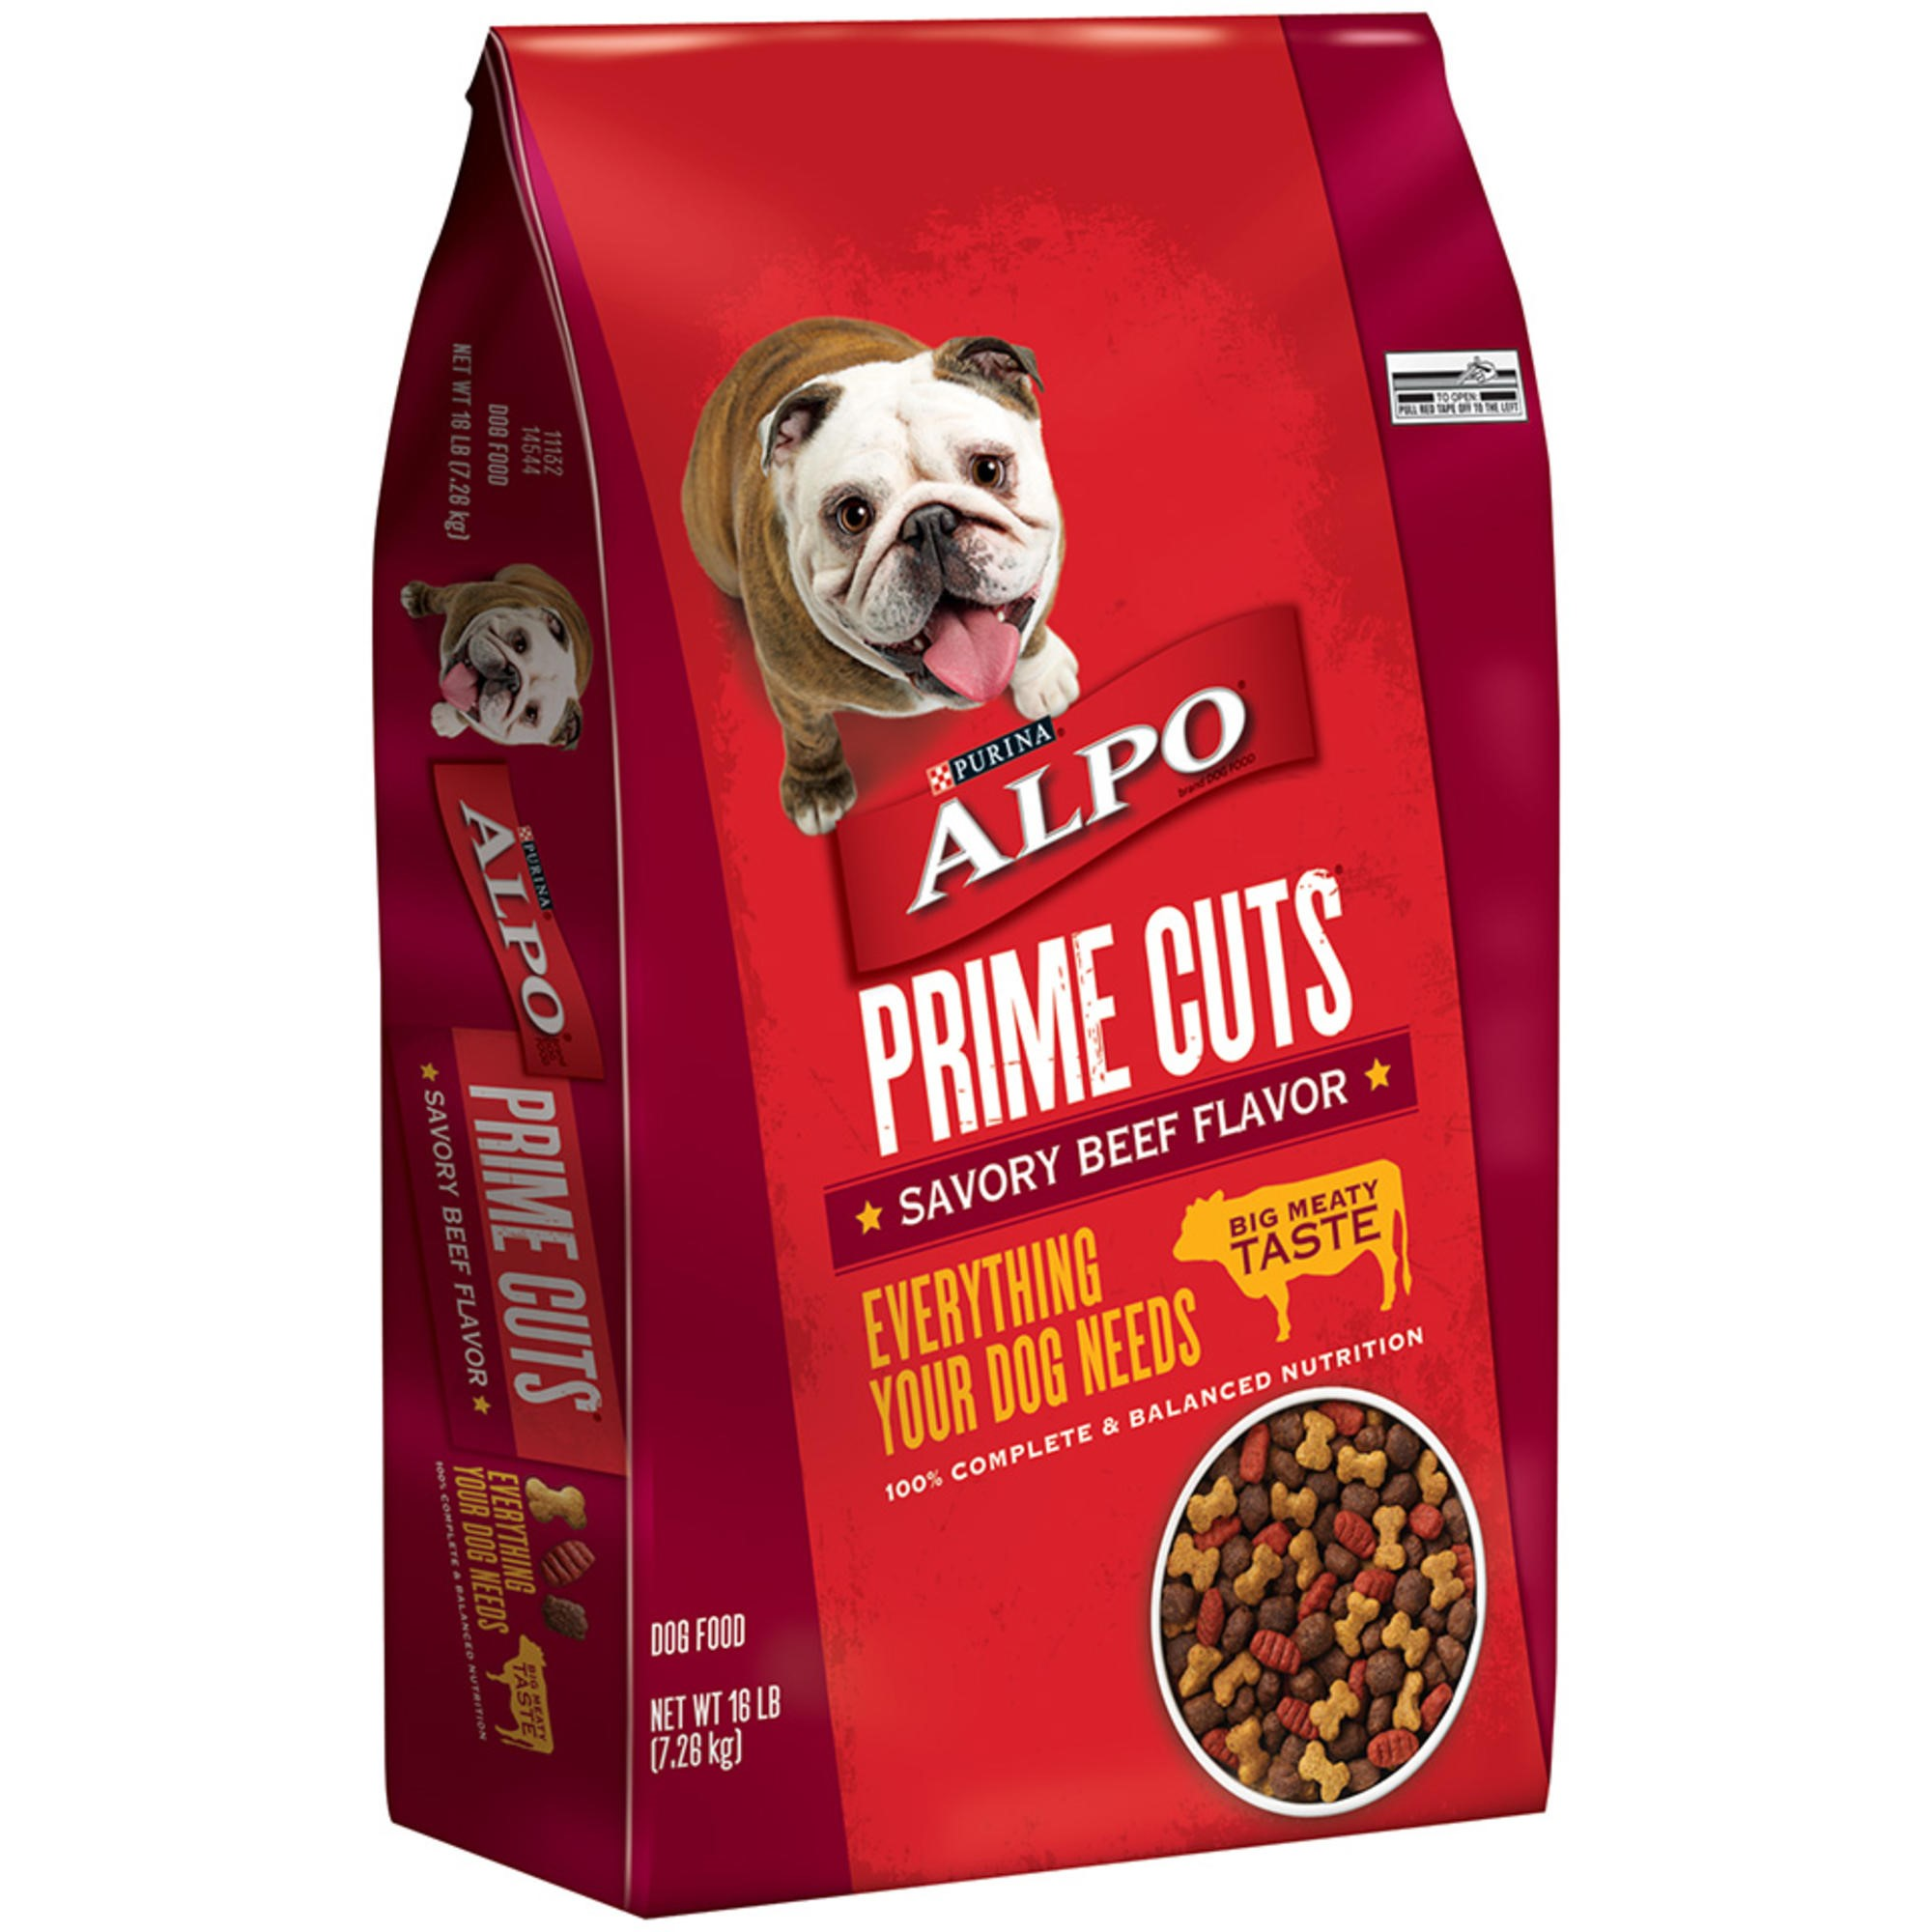 Purina ALPO Prime Cuts Savory Beef Flavor Dry Dog Food, 16 LB